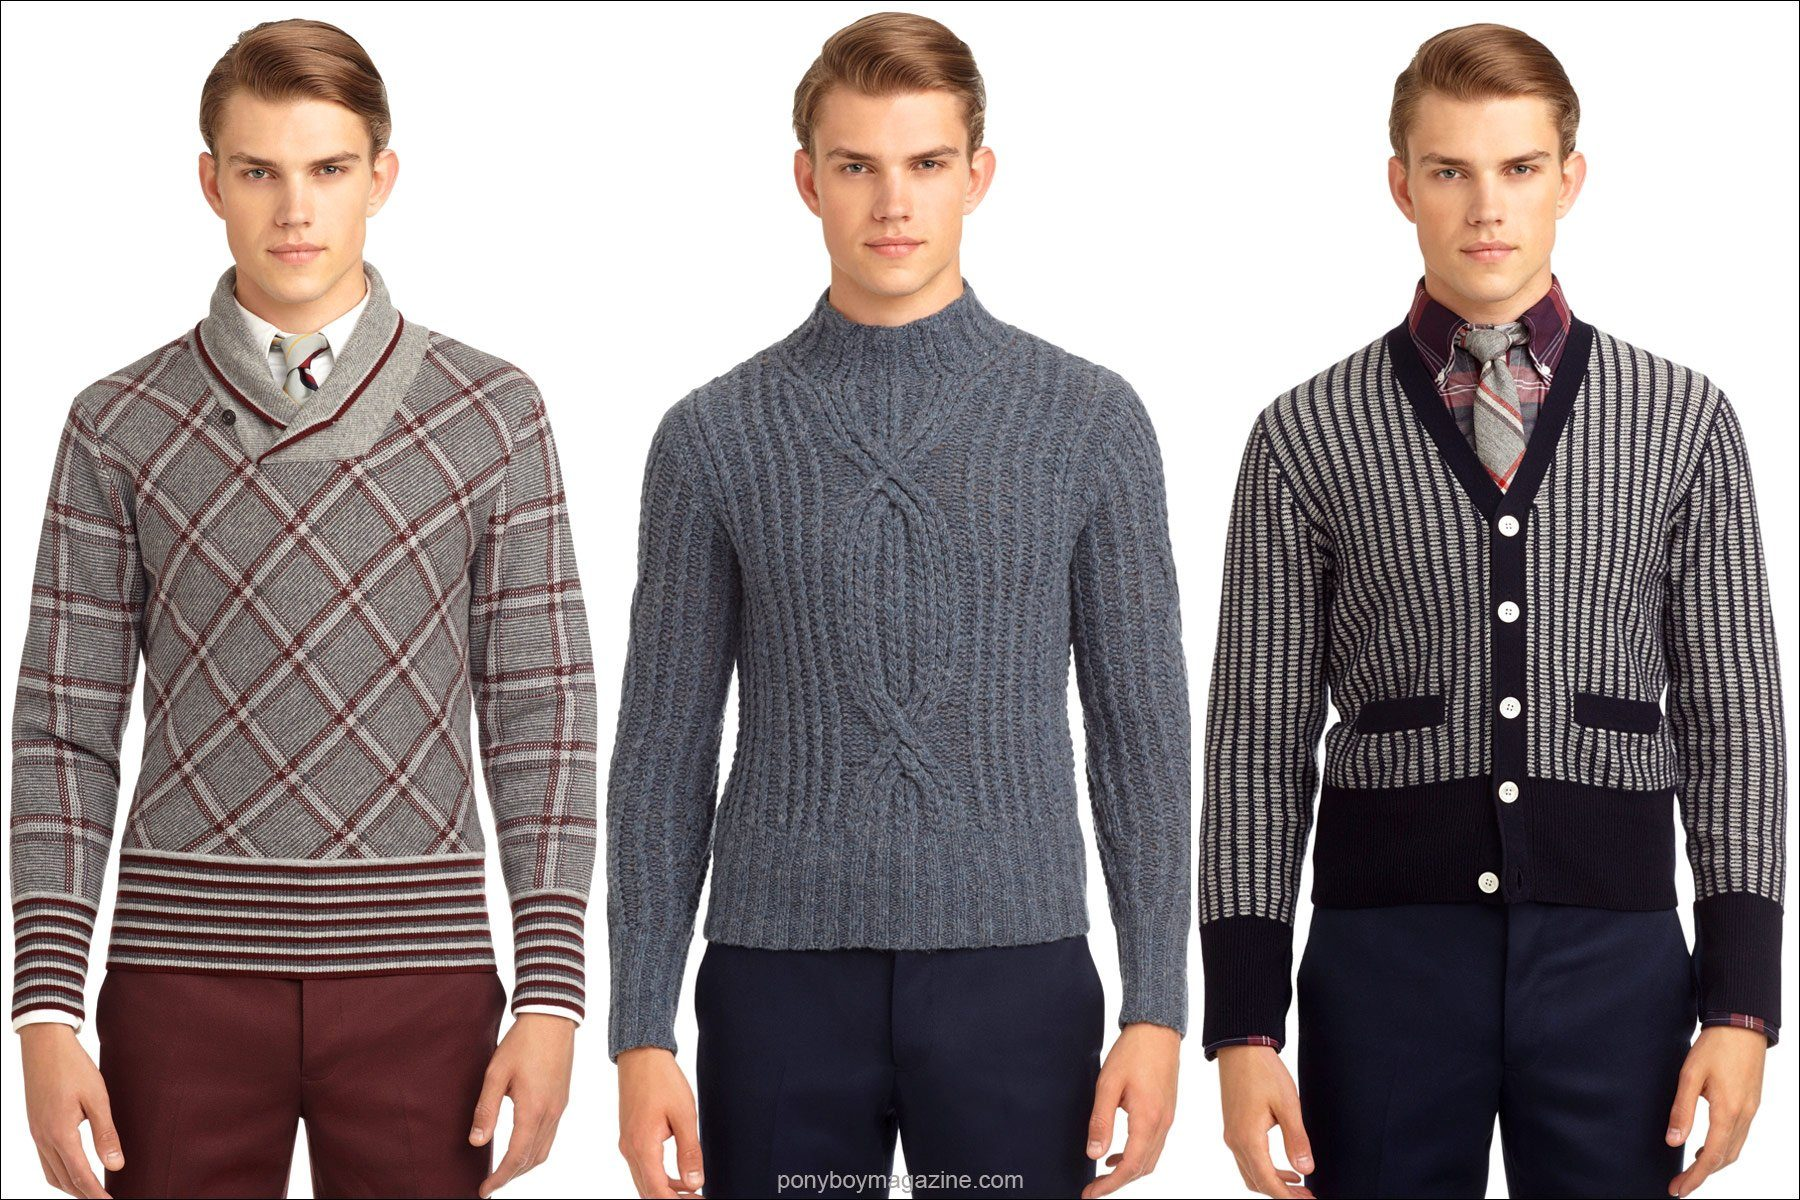 Men s 1950 s inspired sweaters designed by thom browne for black